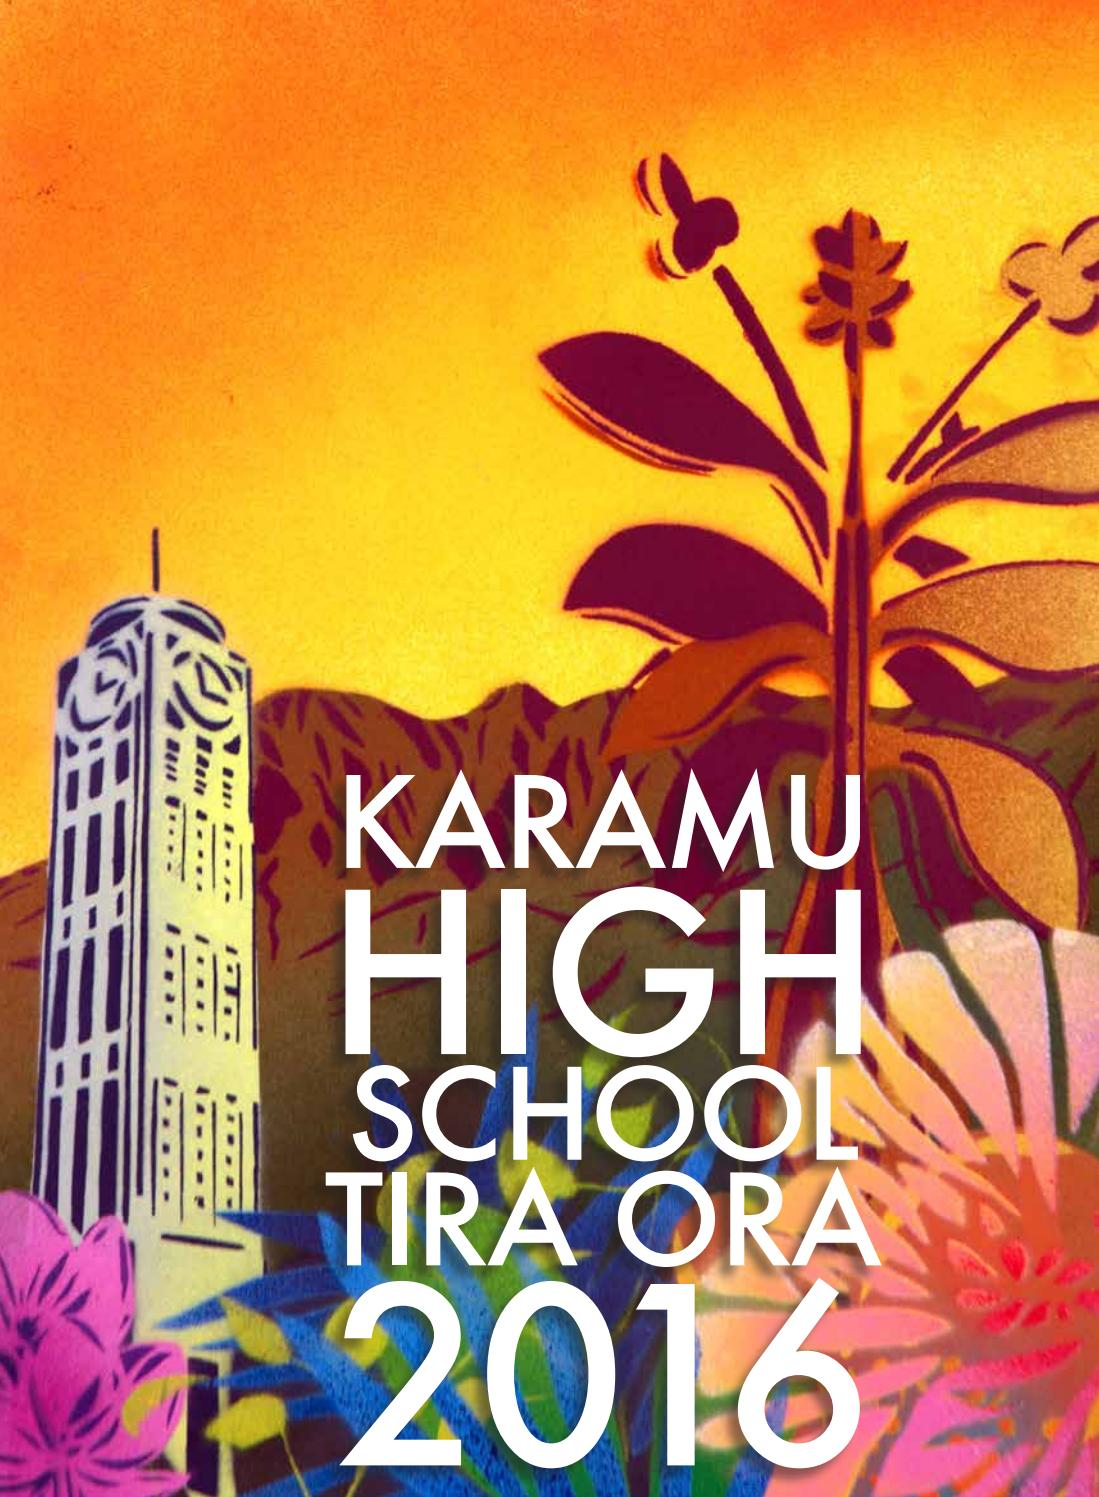 Karamu High School Yearbook 2016 by Karamu High School - issuu